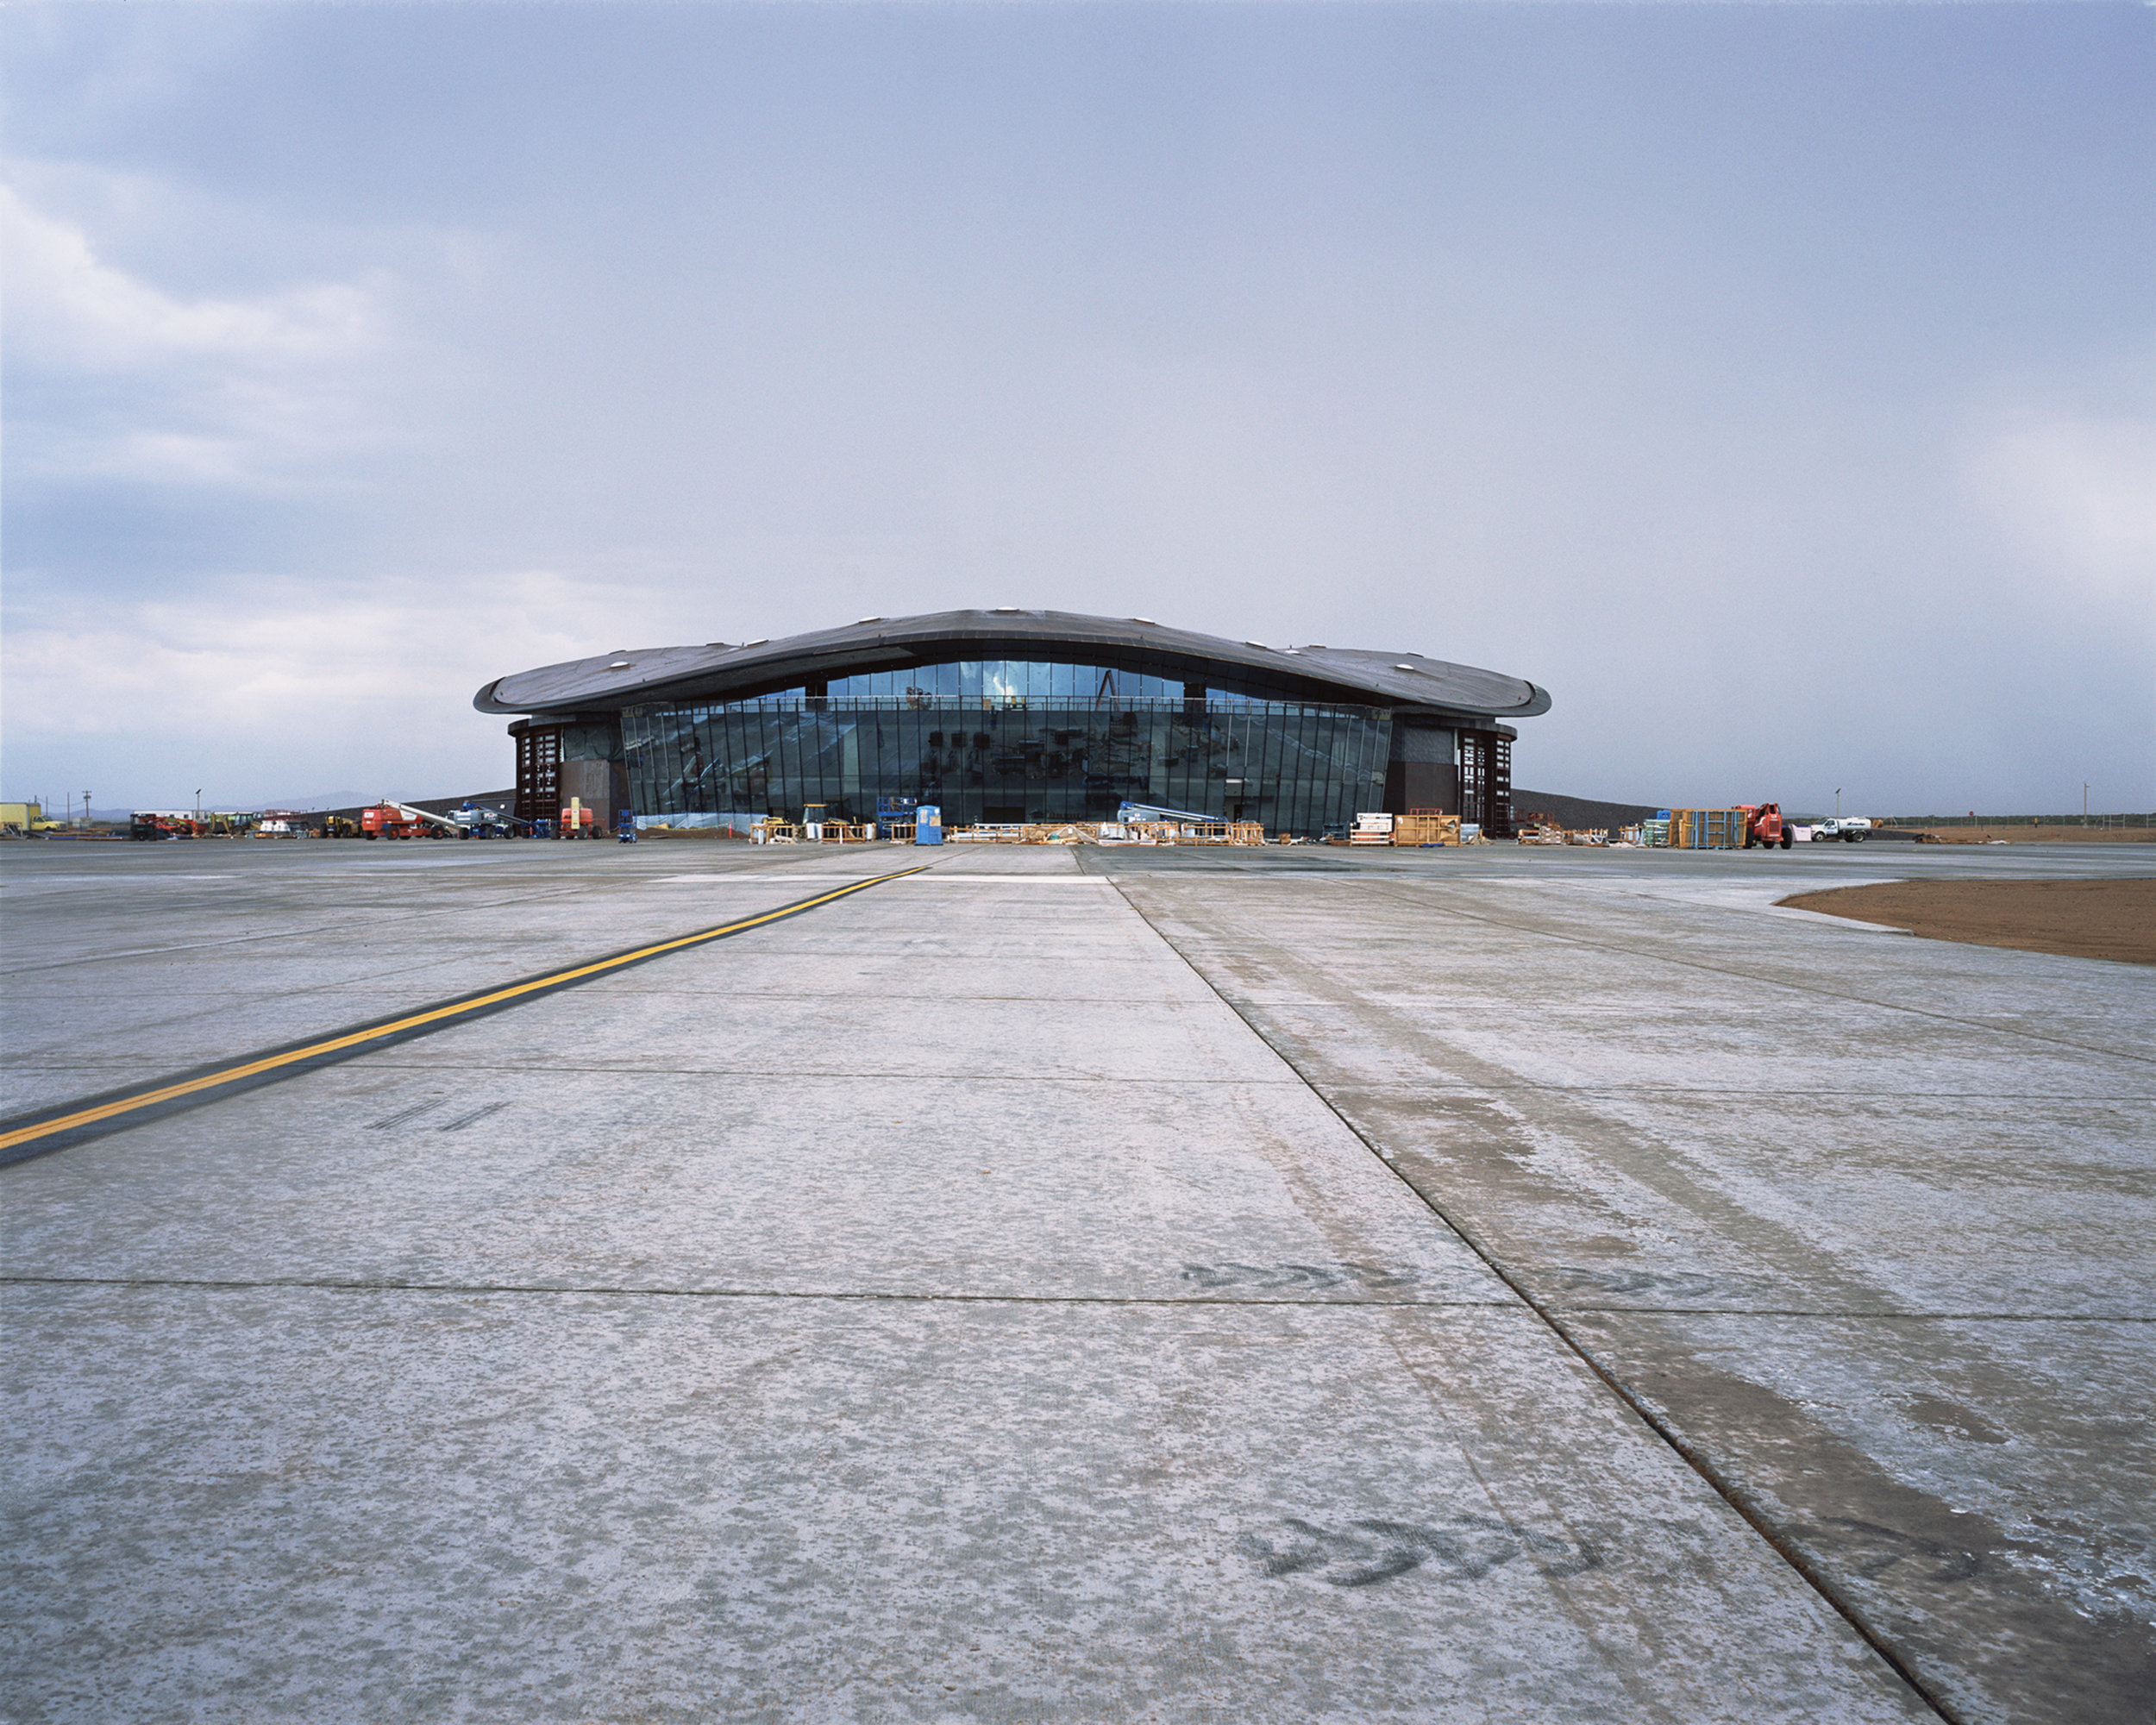 Connie Samaras,  Spaceport America: Terminal Hangar Facility, Facing Mission Control, 2010   Digital pigment print, 30 x 40 inches, edition of 5   Inquire